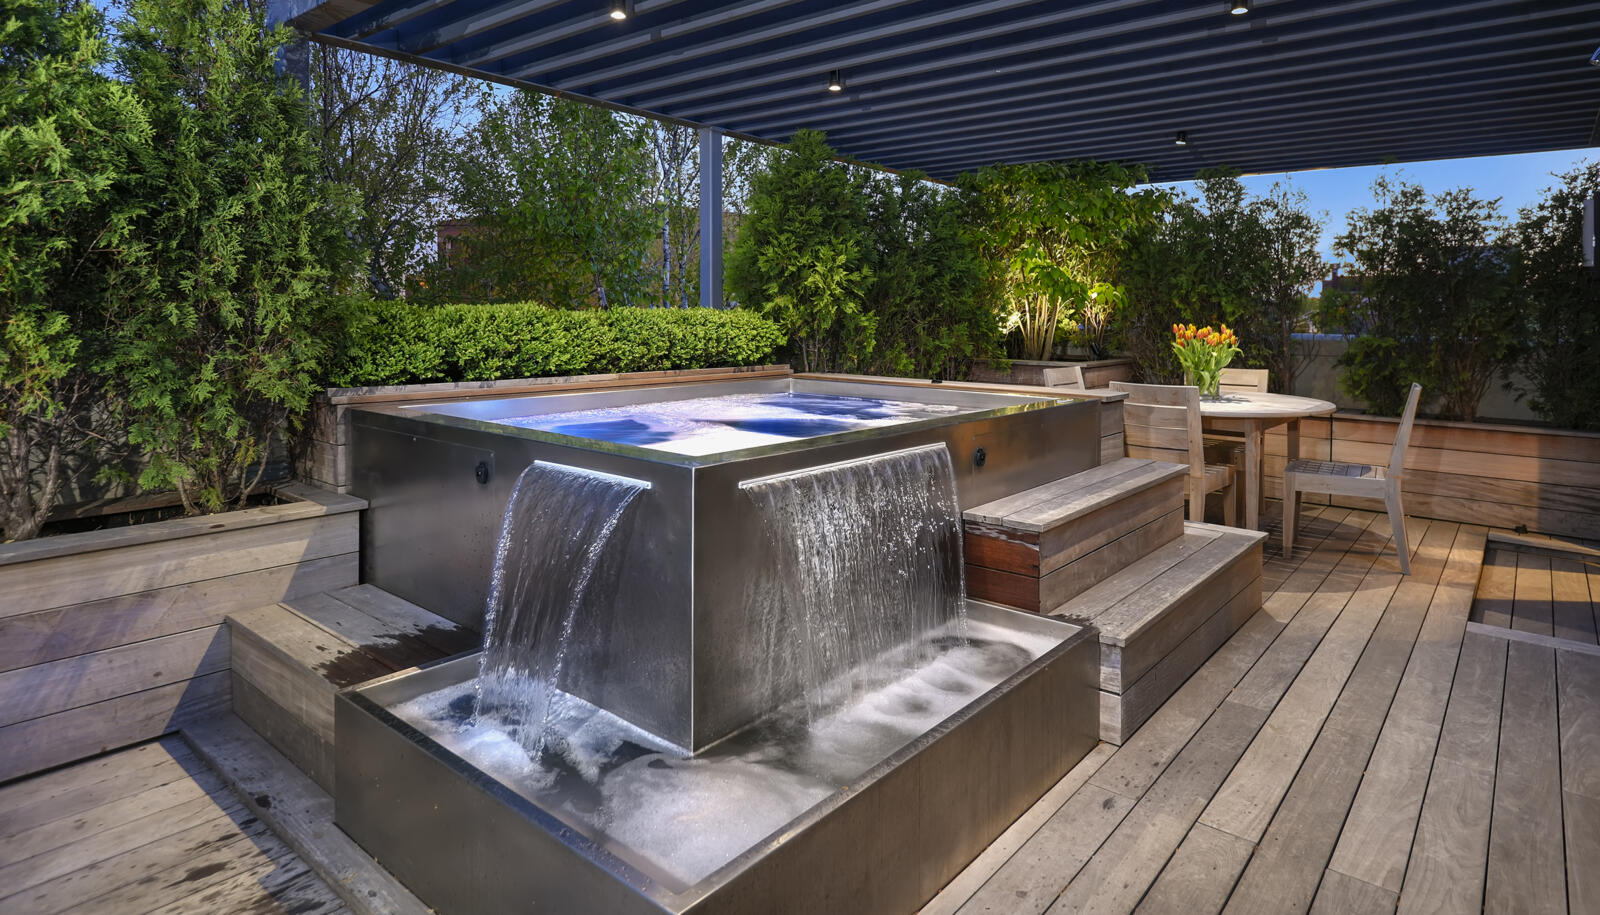 Custom Stainless Steel Roof Top Spa With Interior Stairway, Bench Seating,  2 Separate Water